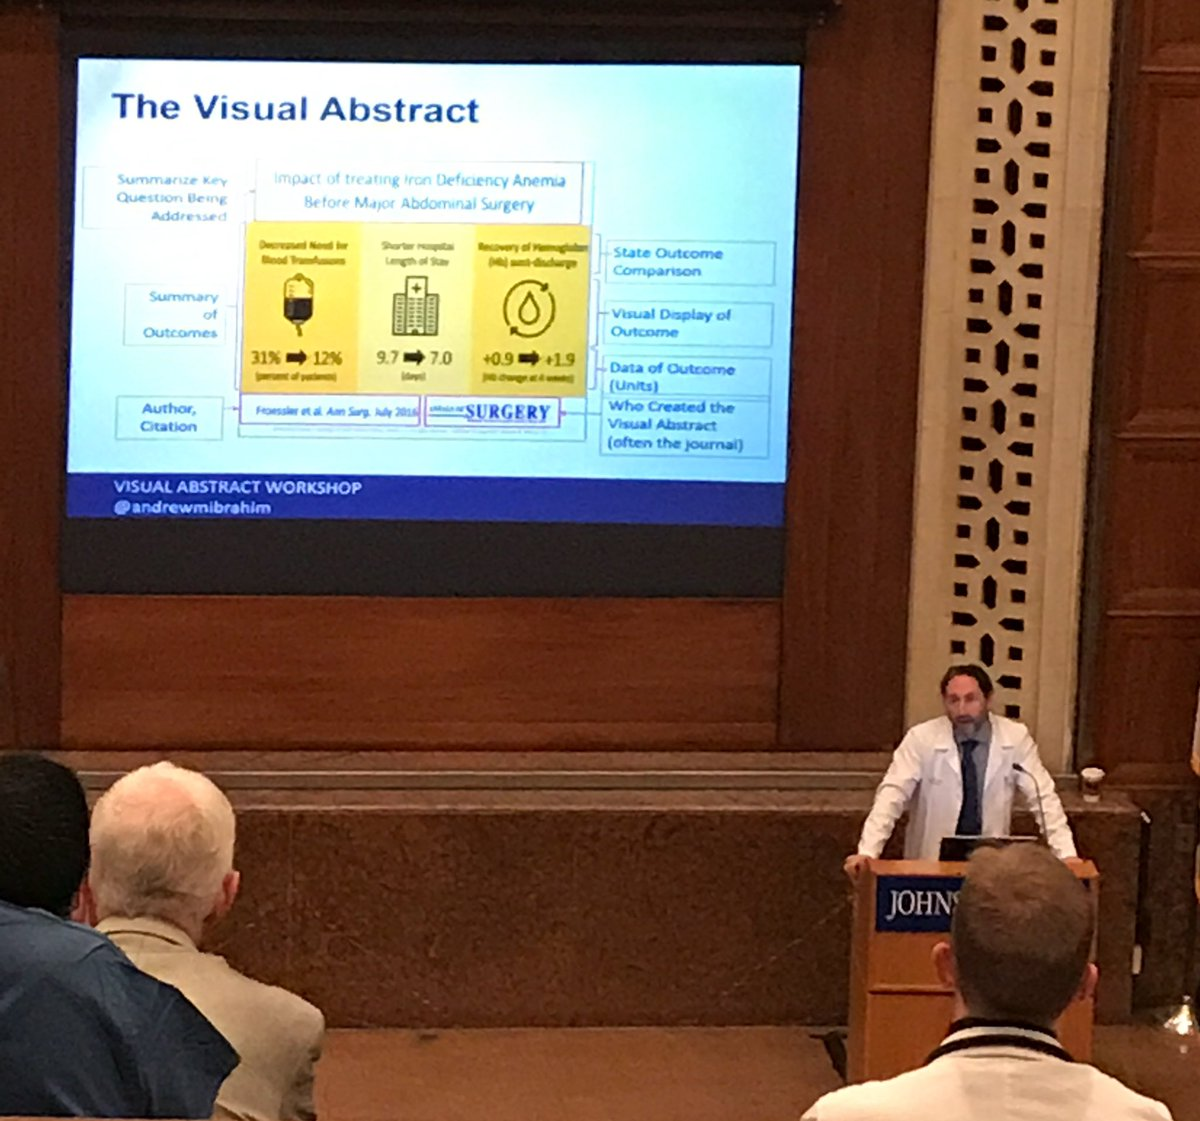 Grand Rounds with @Dorry_Segev @HopkinsACCM - presenting virtues of visual abstract via @AndrewMIbrahim #hcsm #SoMe <br>http://pic.twitter.com/N68z3zHoX6